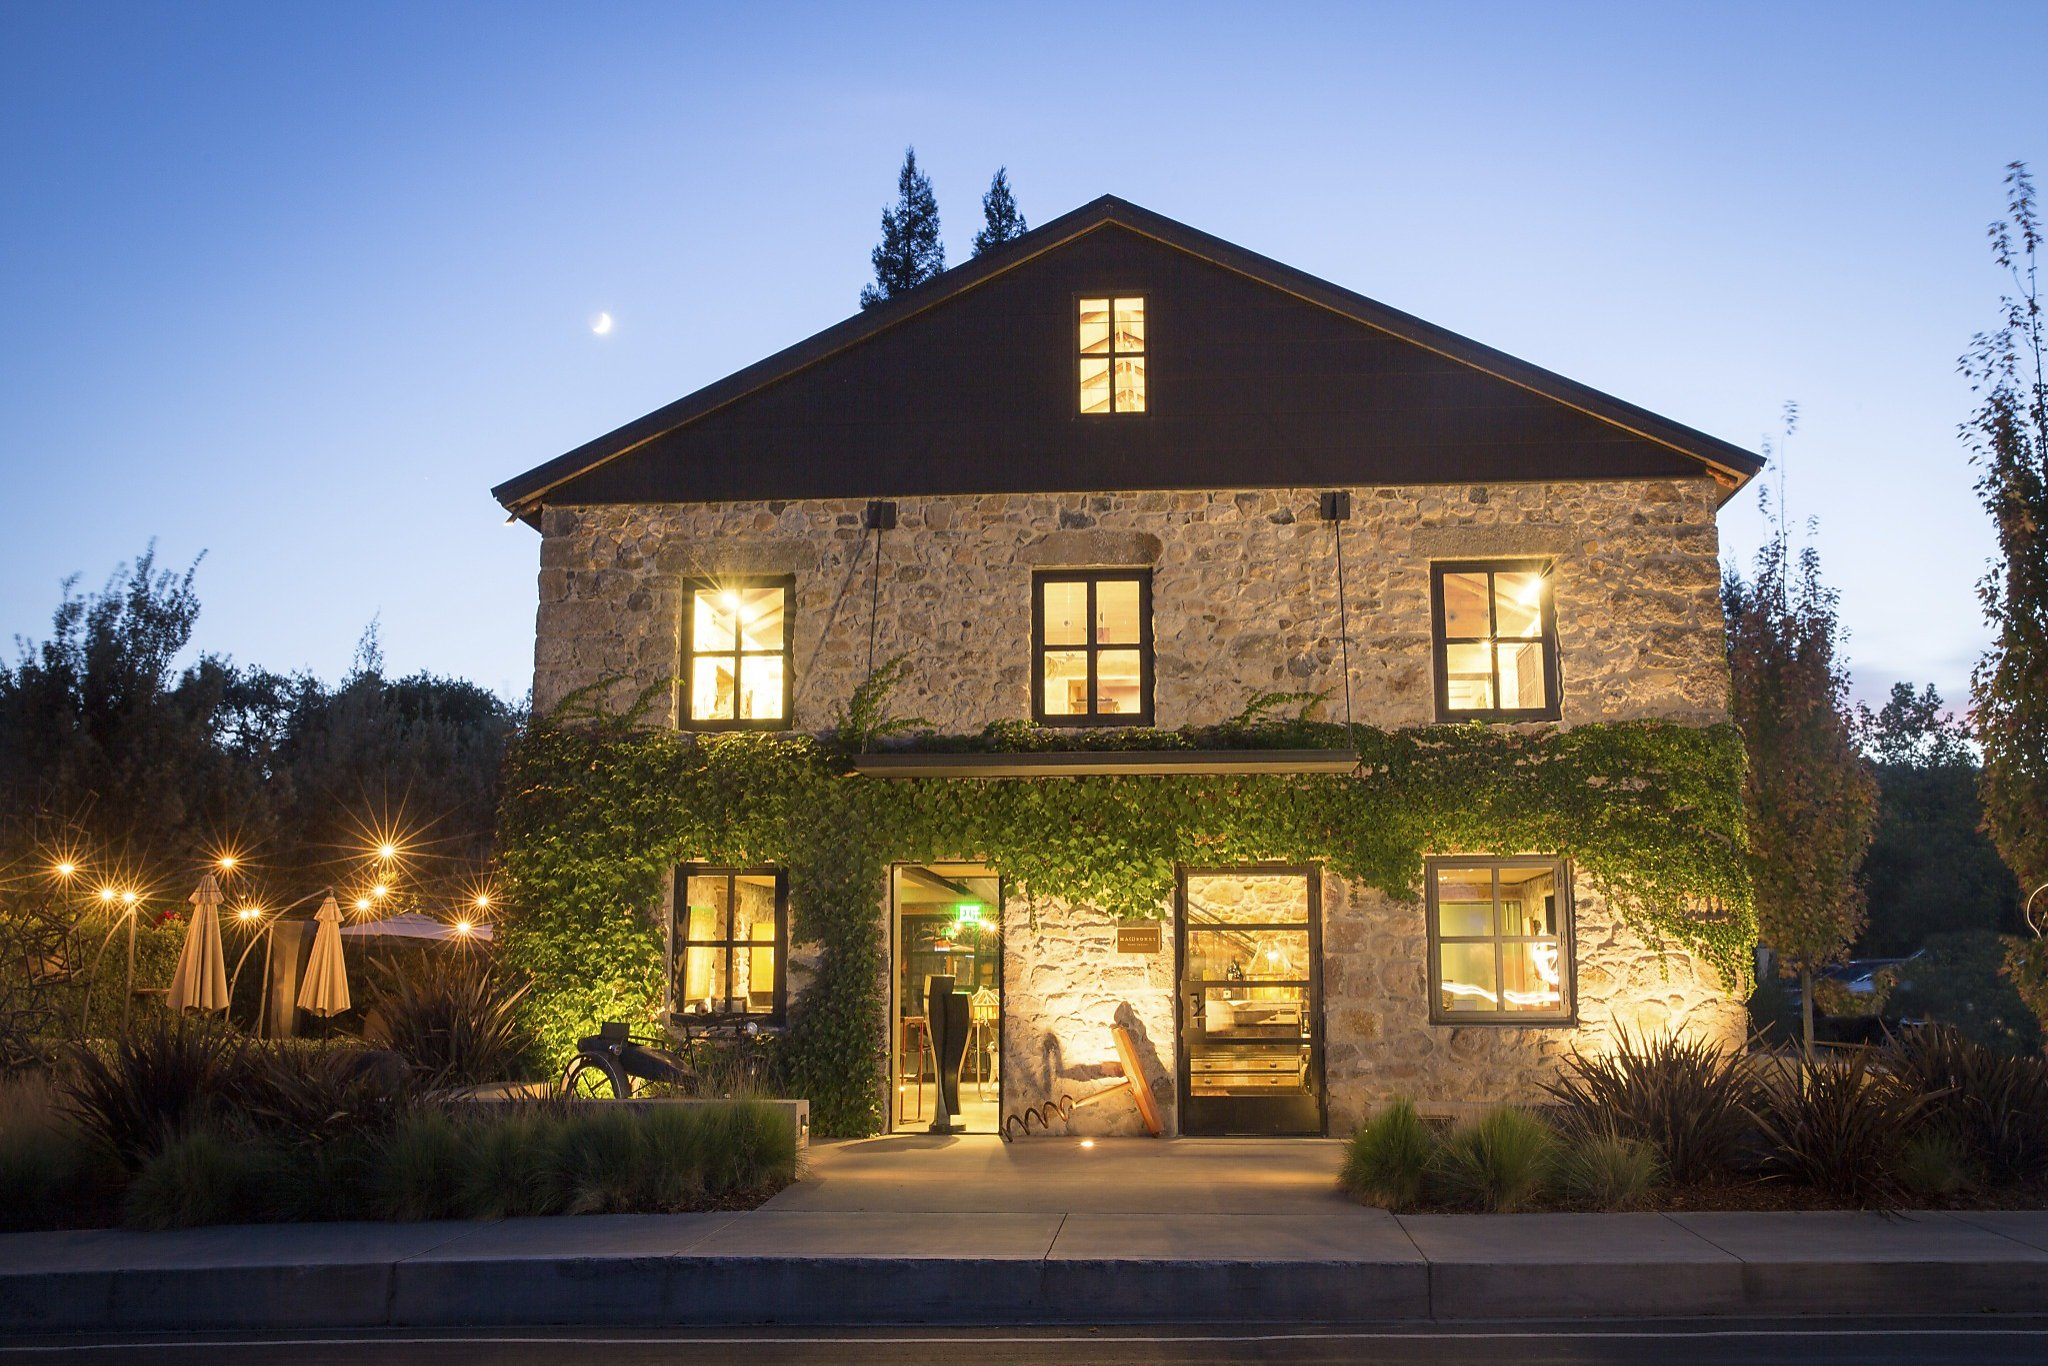 Napa: Tasteful winery design for your wine tasting - SFGate